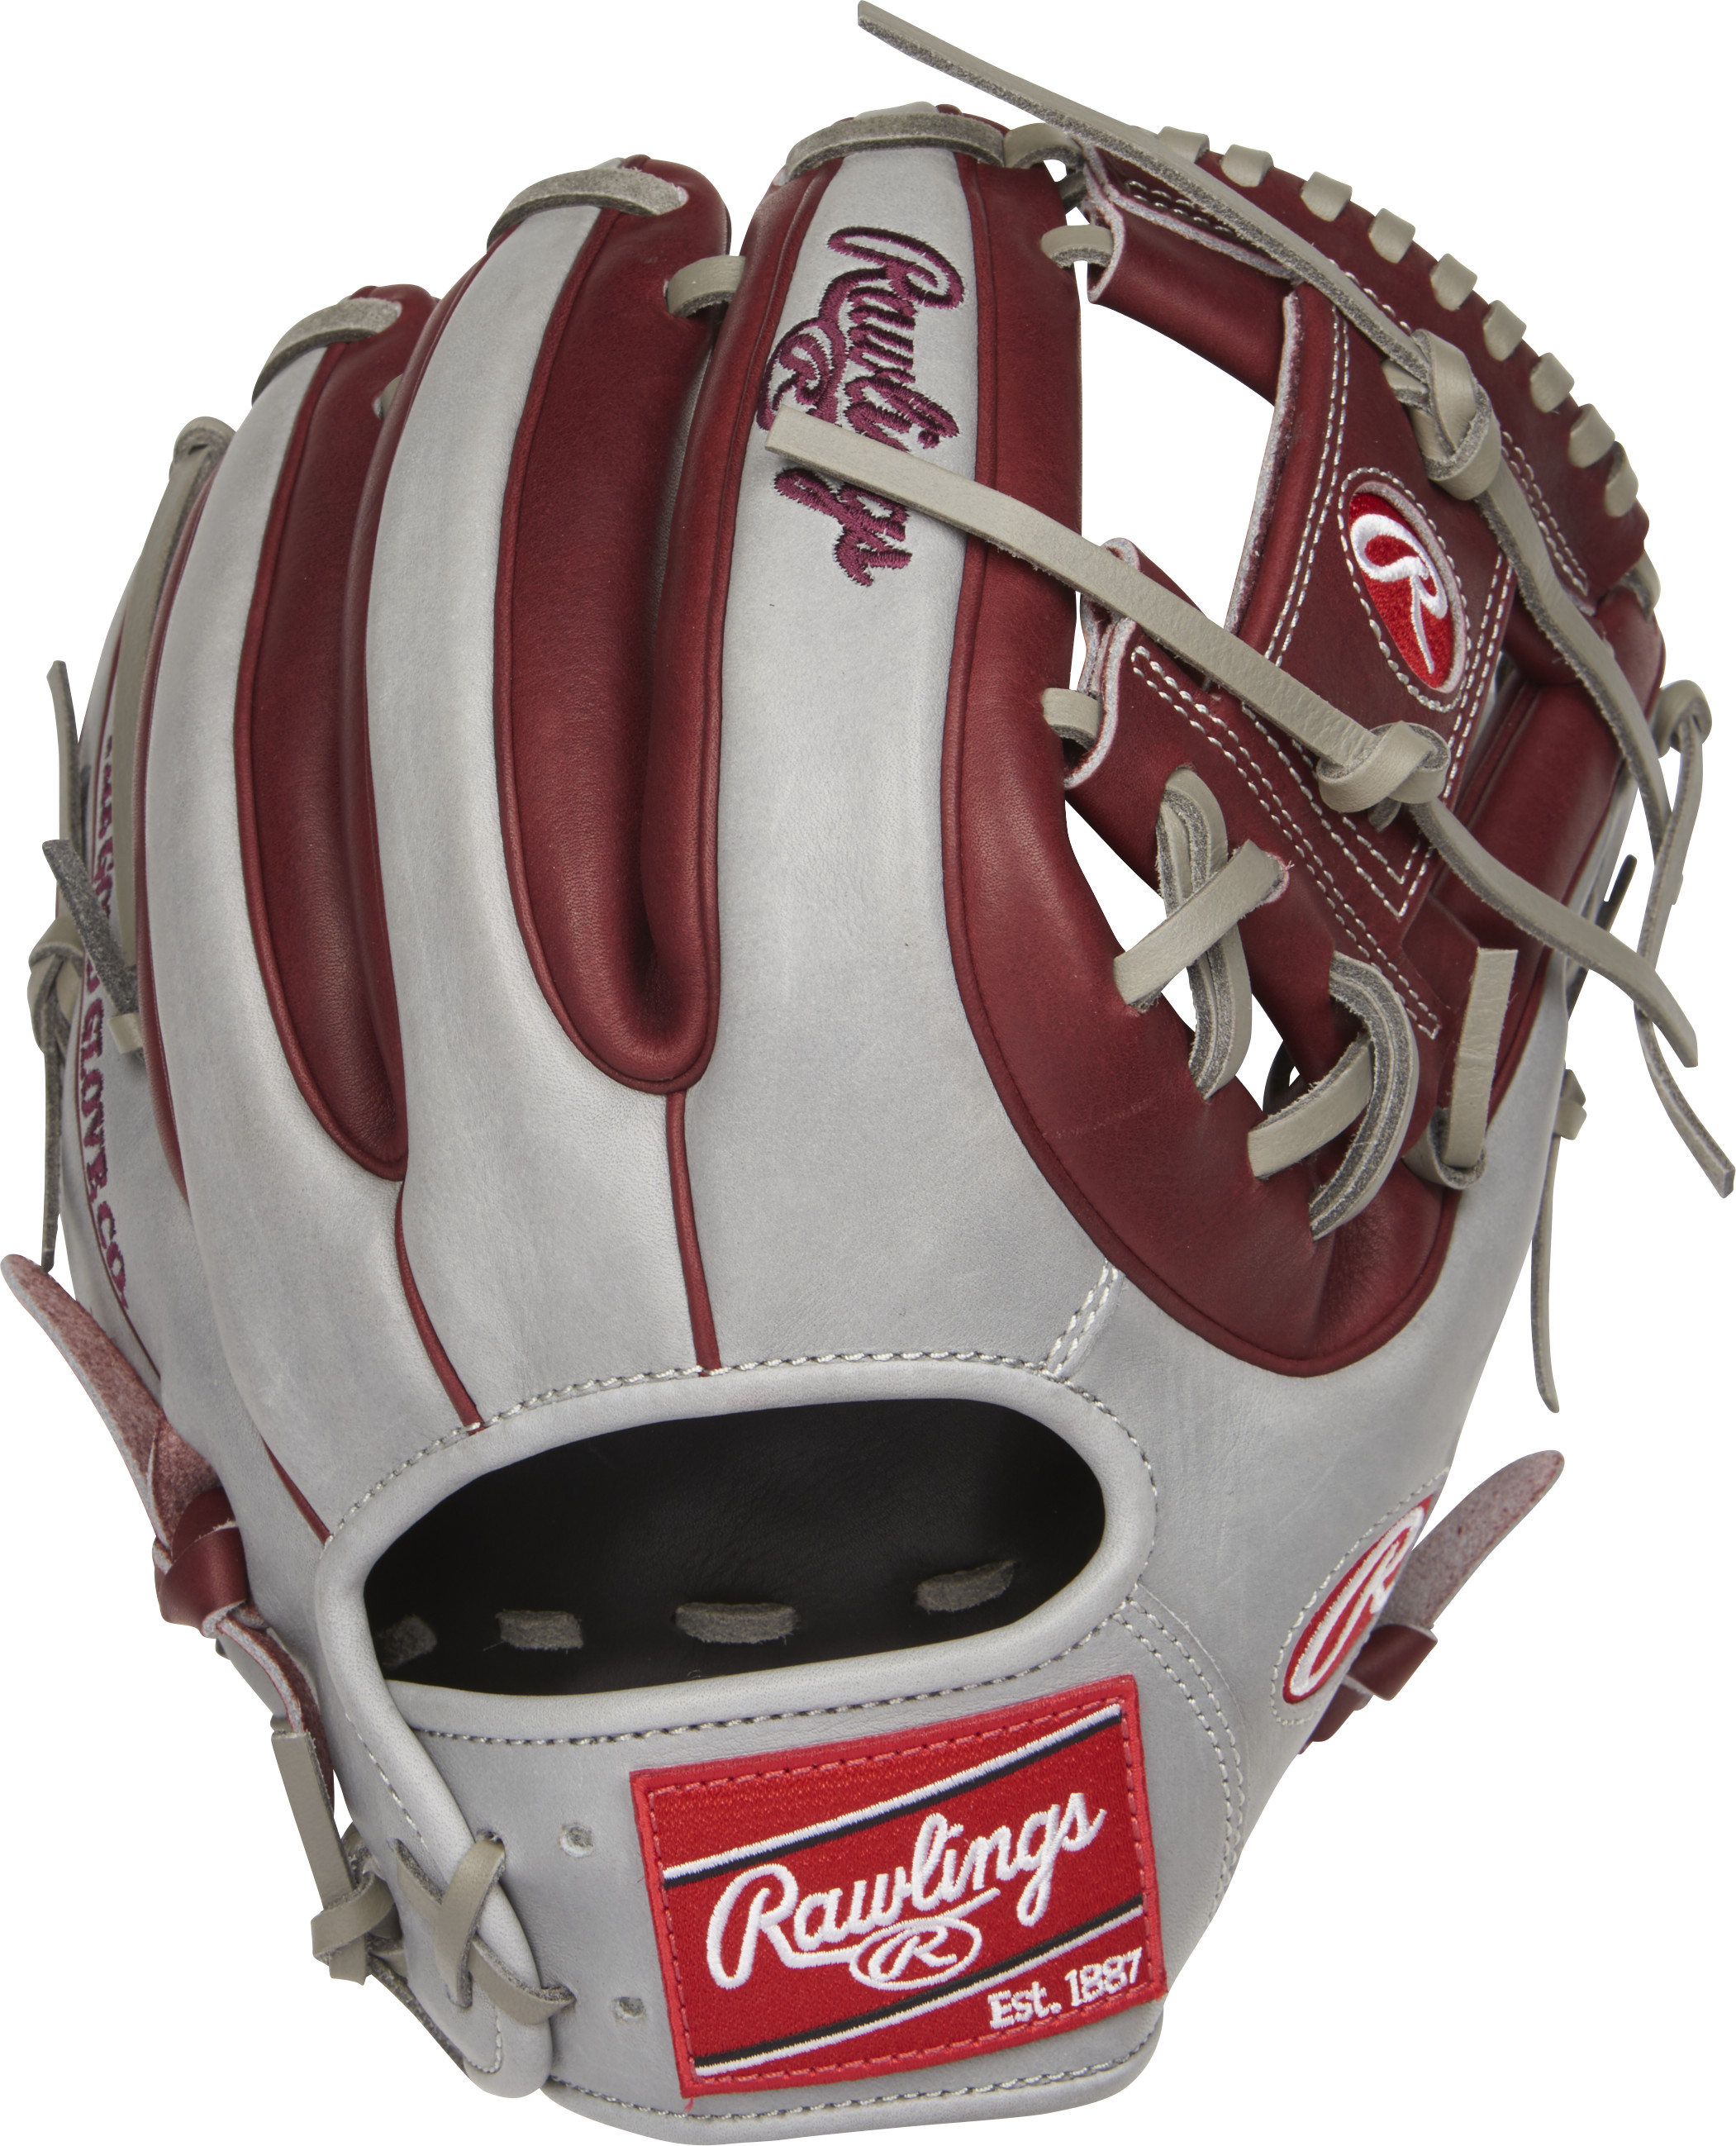 http://www.bestbatdeals.com/images/gloves/rawlings/PRO315-2SHG-2.jpg